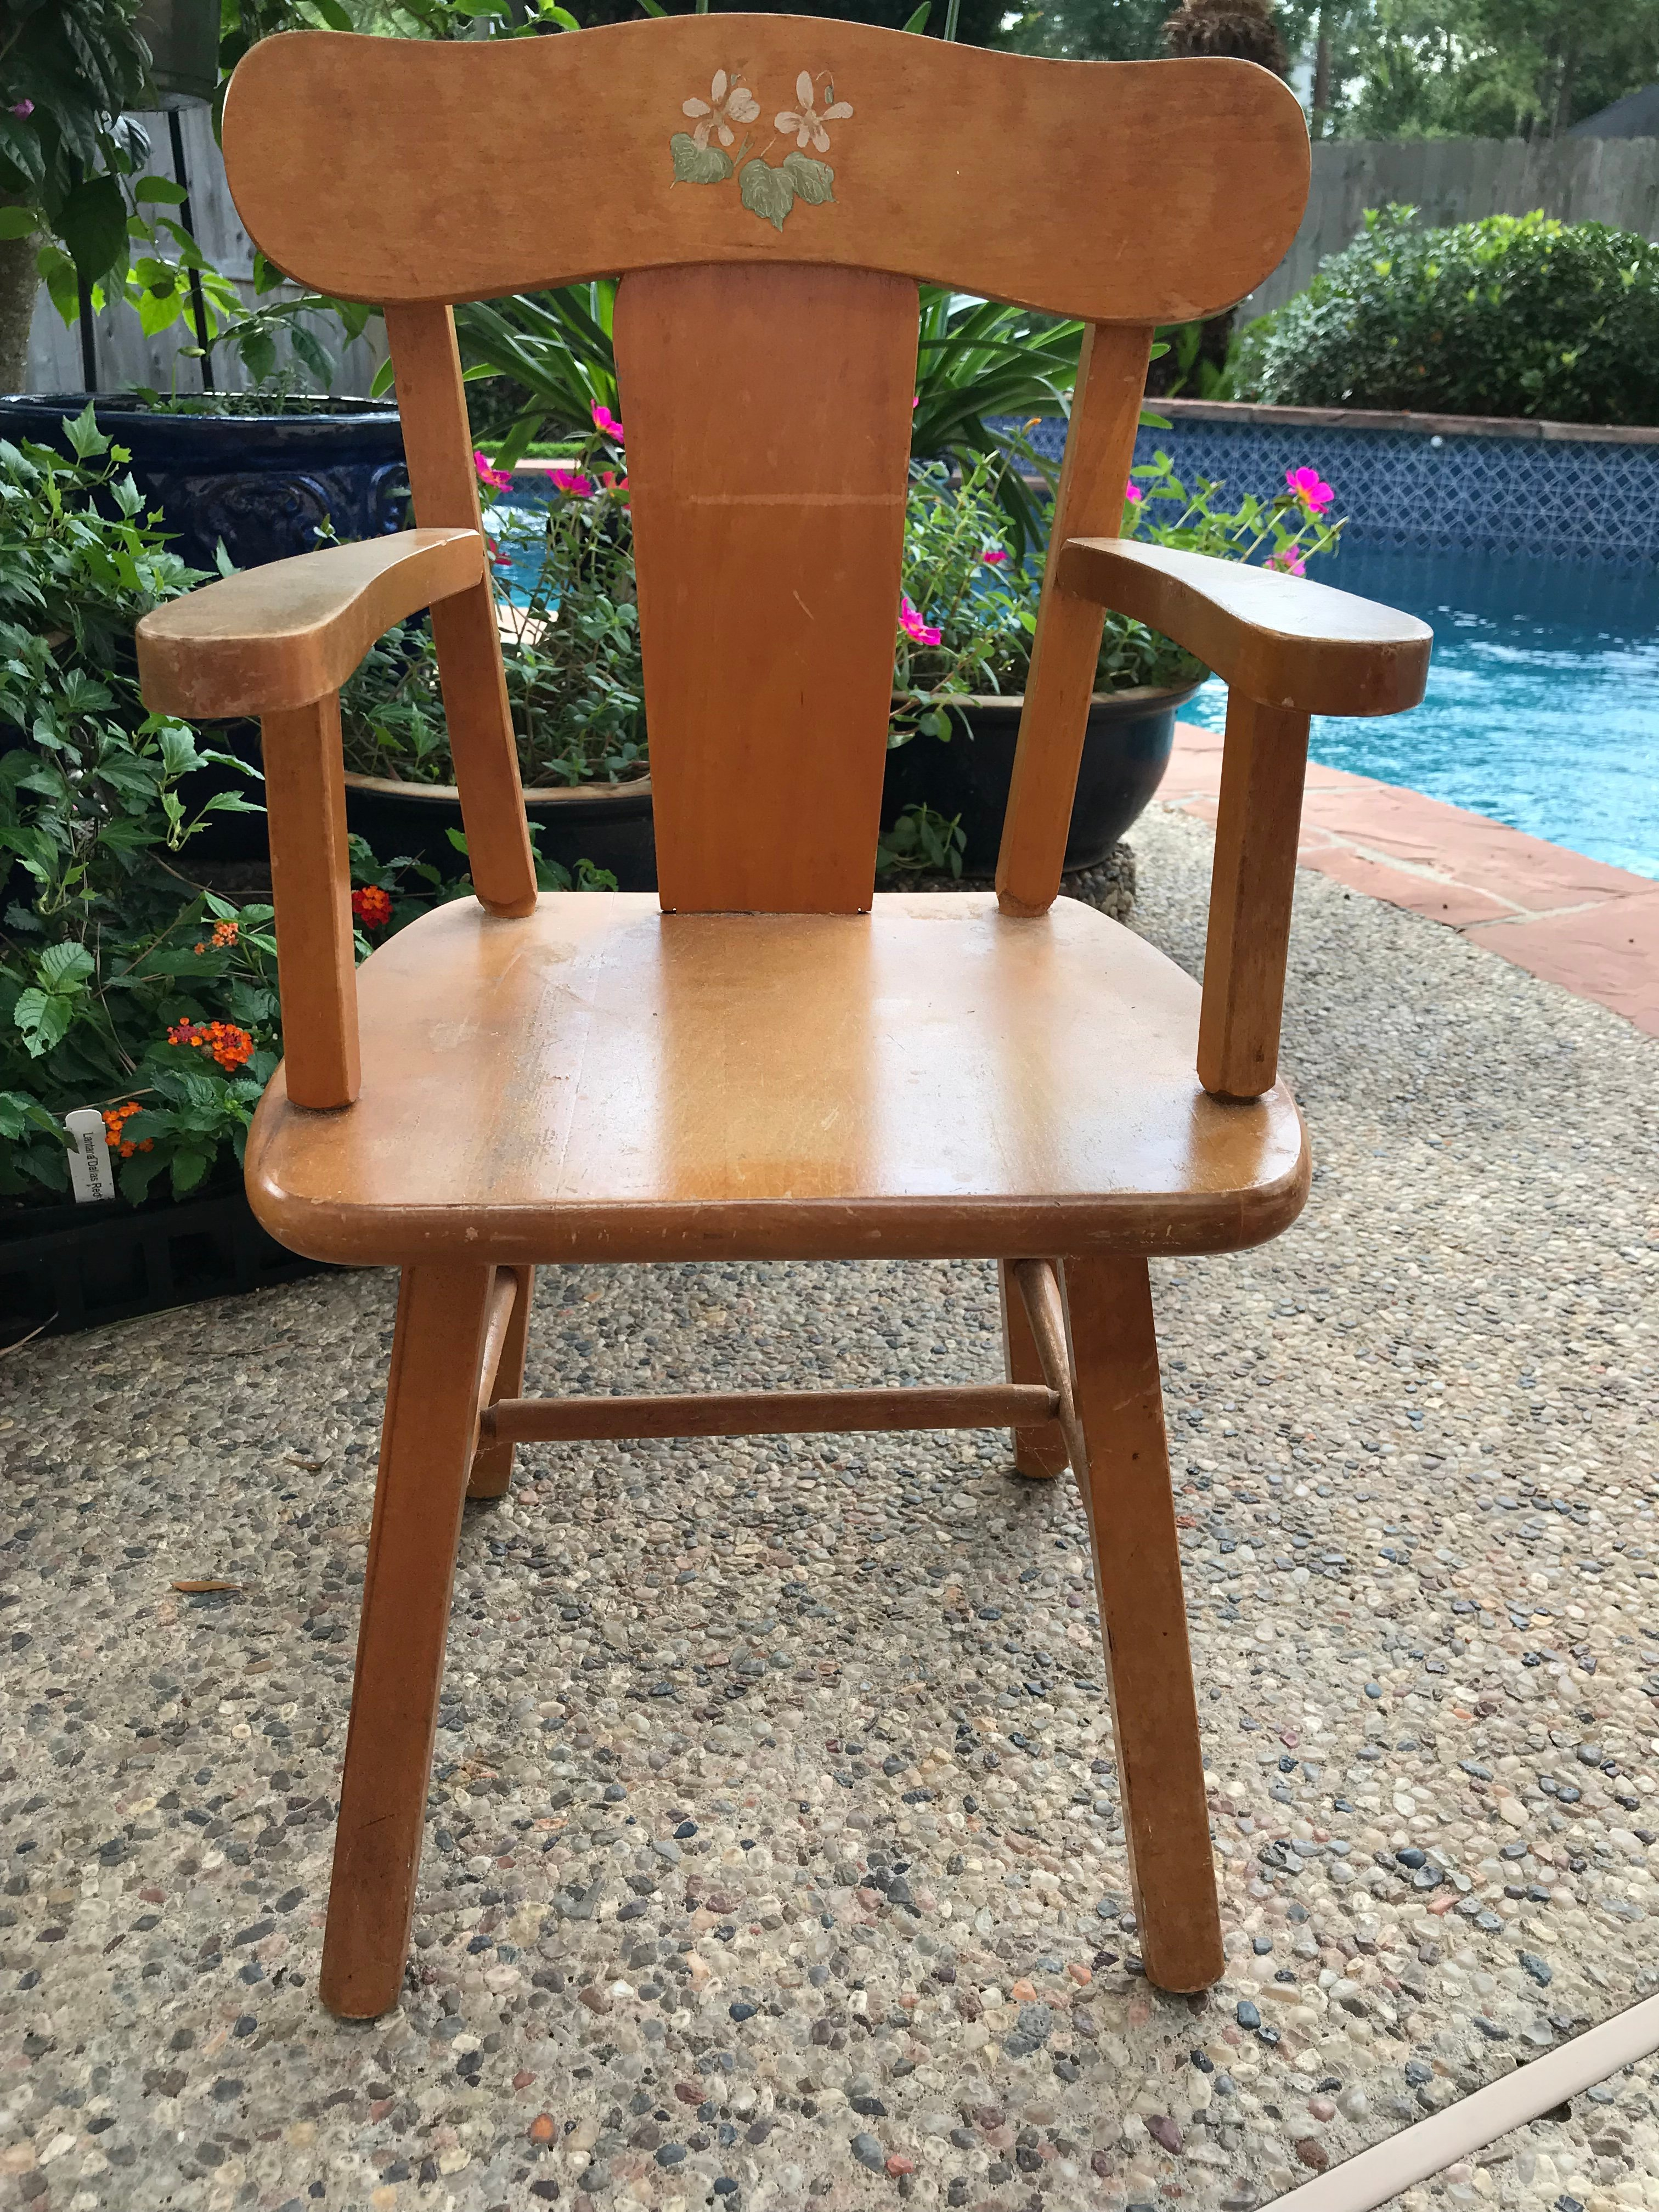 Superb I Am Trying To Find Information On Thayer Tops For Tots Spiritservingveterans Wood Chair Design Ideas Spiritservingveteransorg